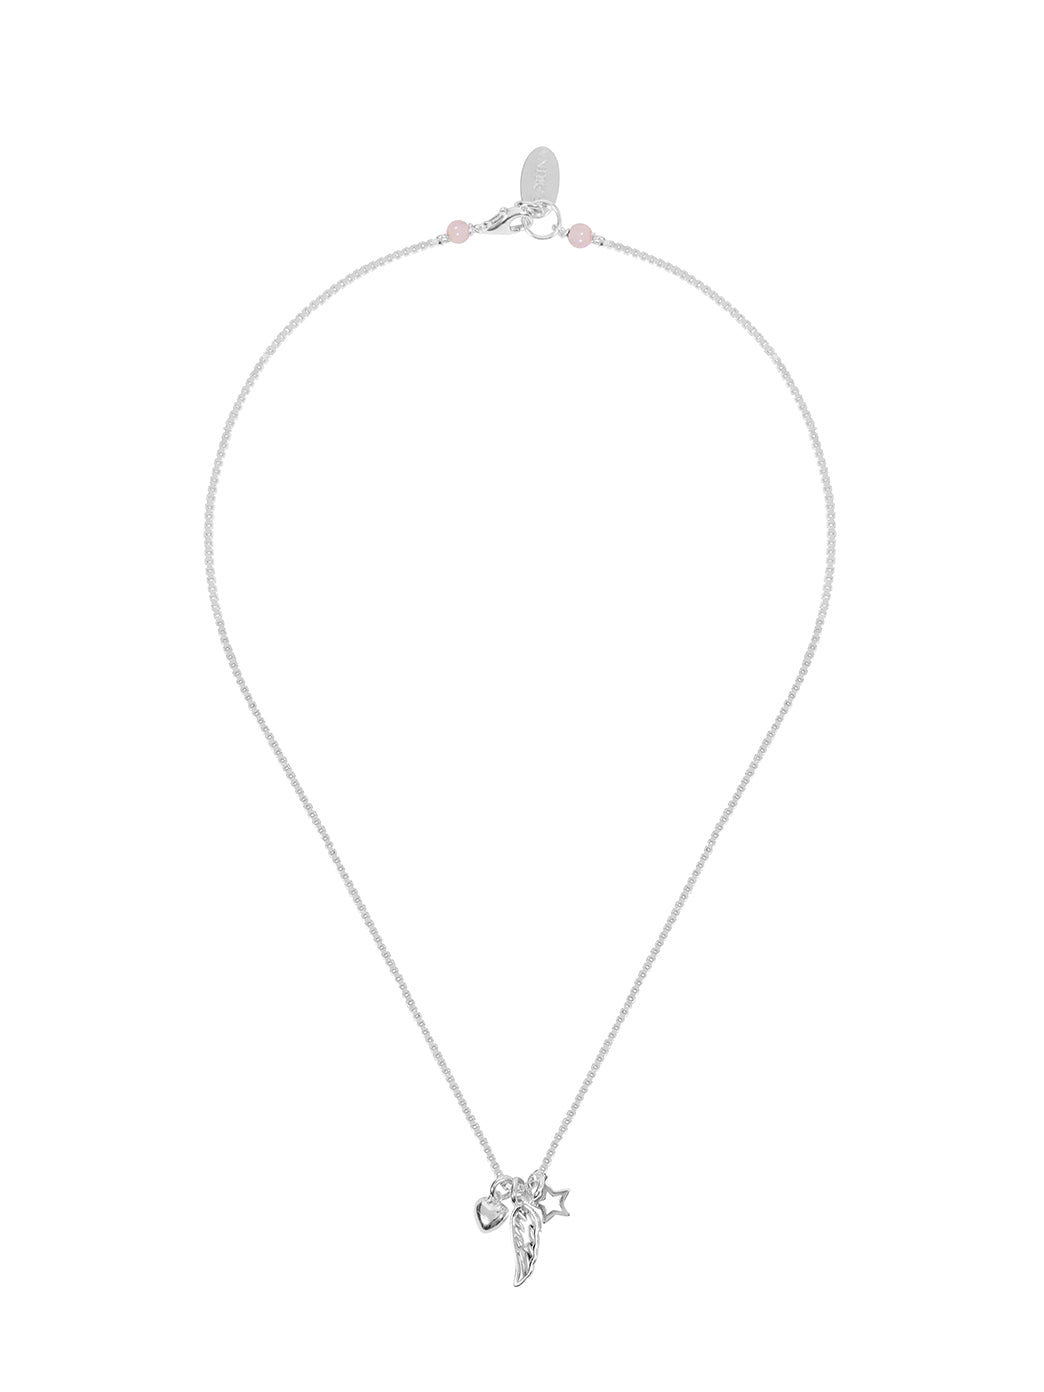 Fiorina Jewellery Mini Charm Necklace Aria